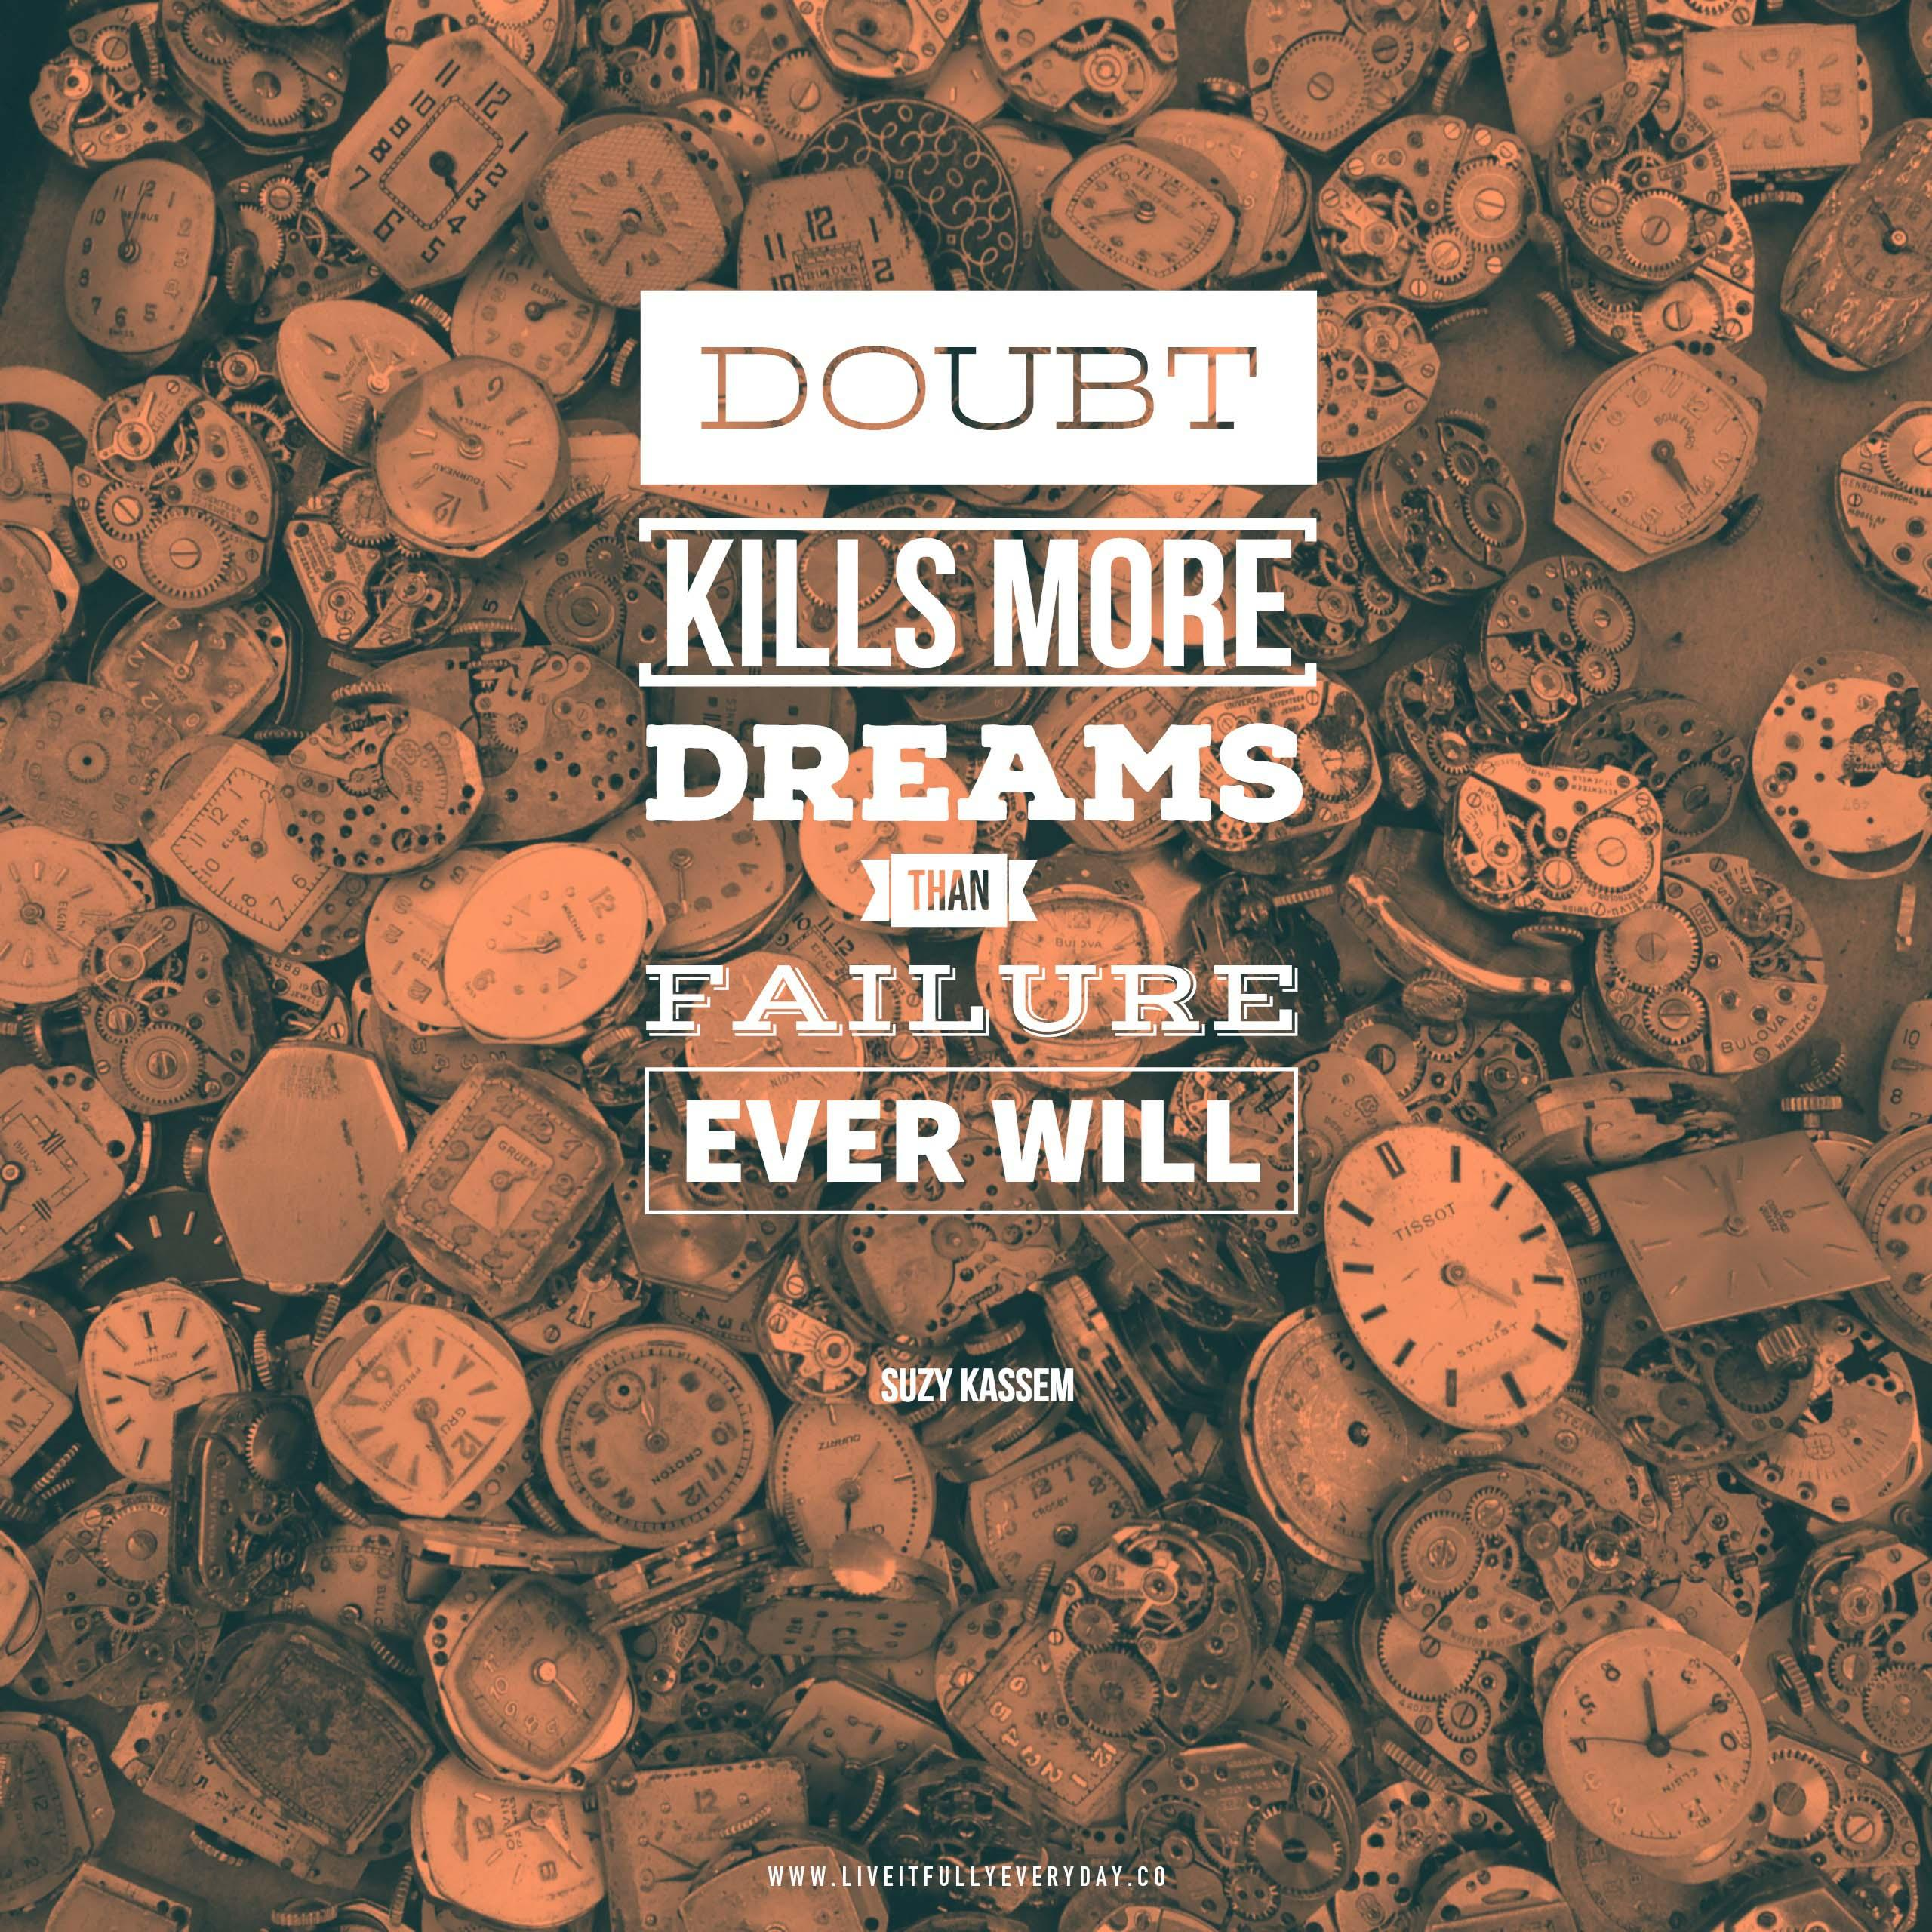 DOUBT W DREAMS 1-: SUZY https://inspirational.ly